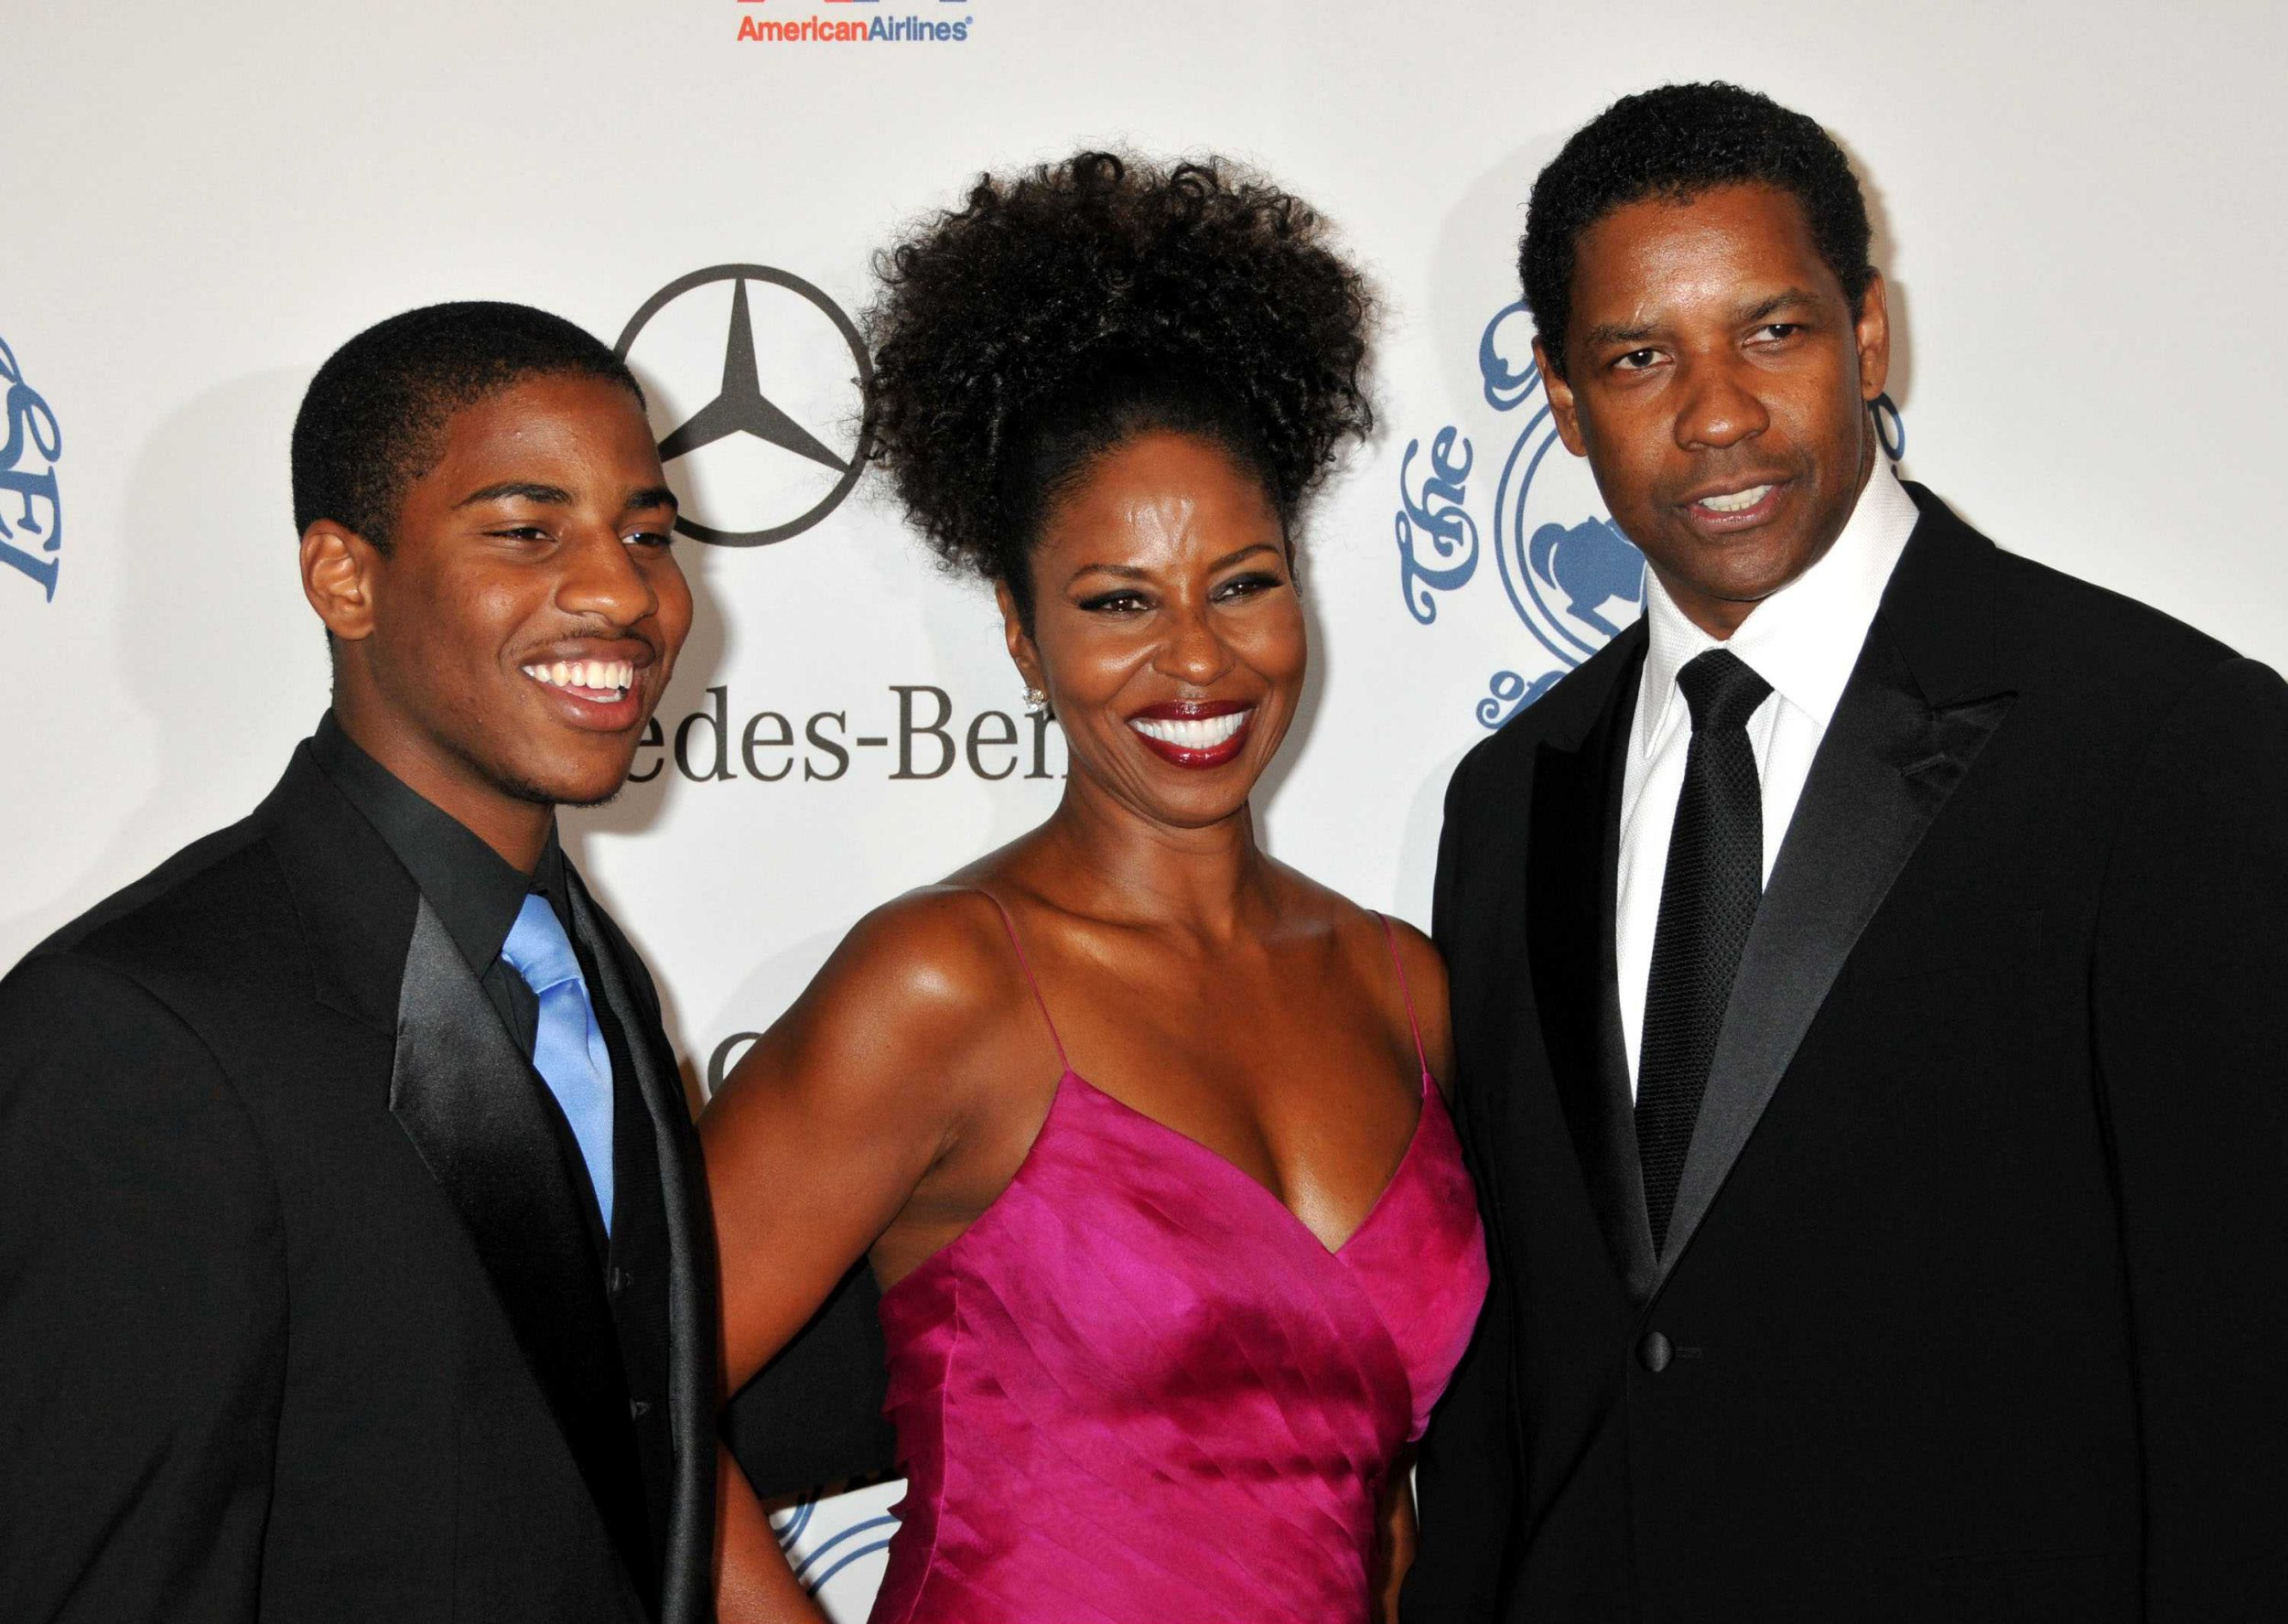 Mandatory Credit: Photo by Sipa Press/REX/Shutterstock (813061f) Denzel Washington, wife Pauletta and son Malcolm 30th Carousel of Hope Ball, Benefiting the Barbara Davis Center for Childhood Diabetes, Los Angeles, America - 25 Oct 2008